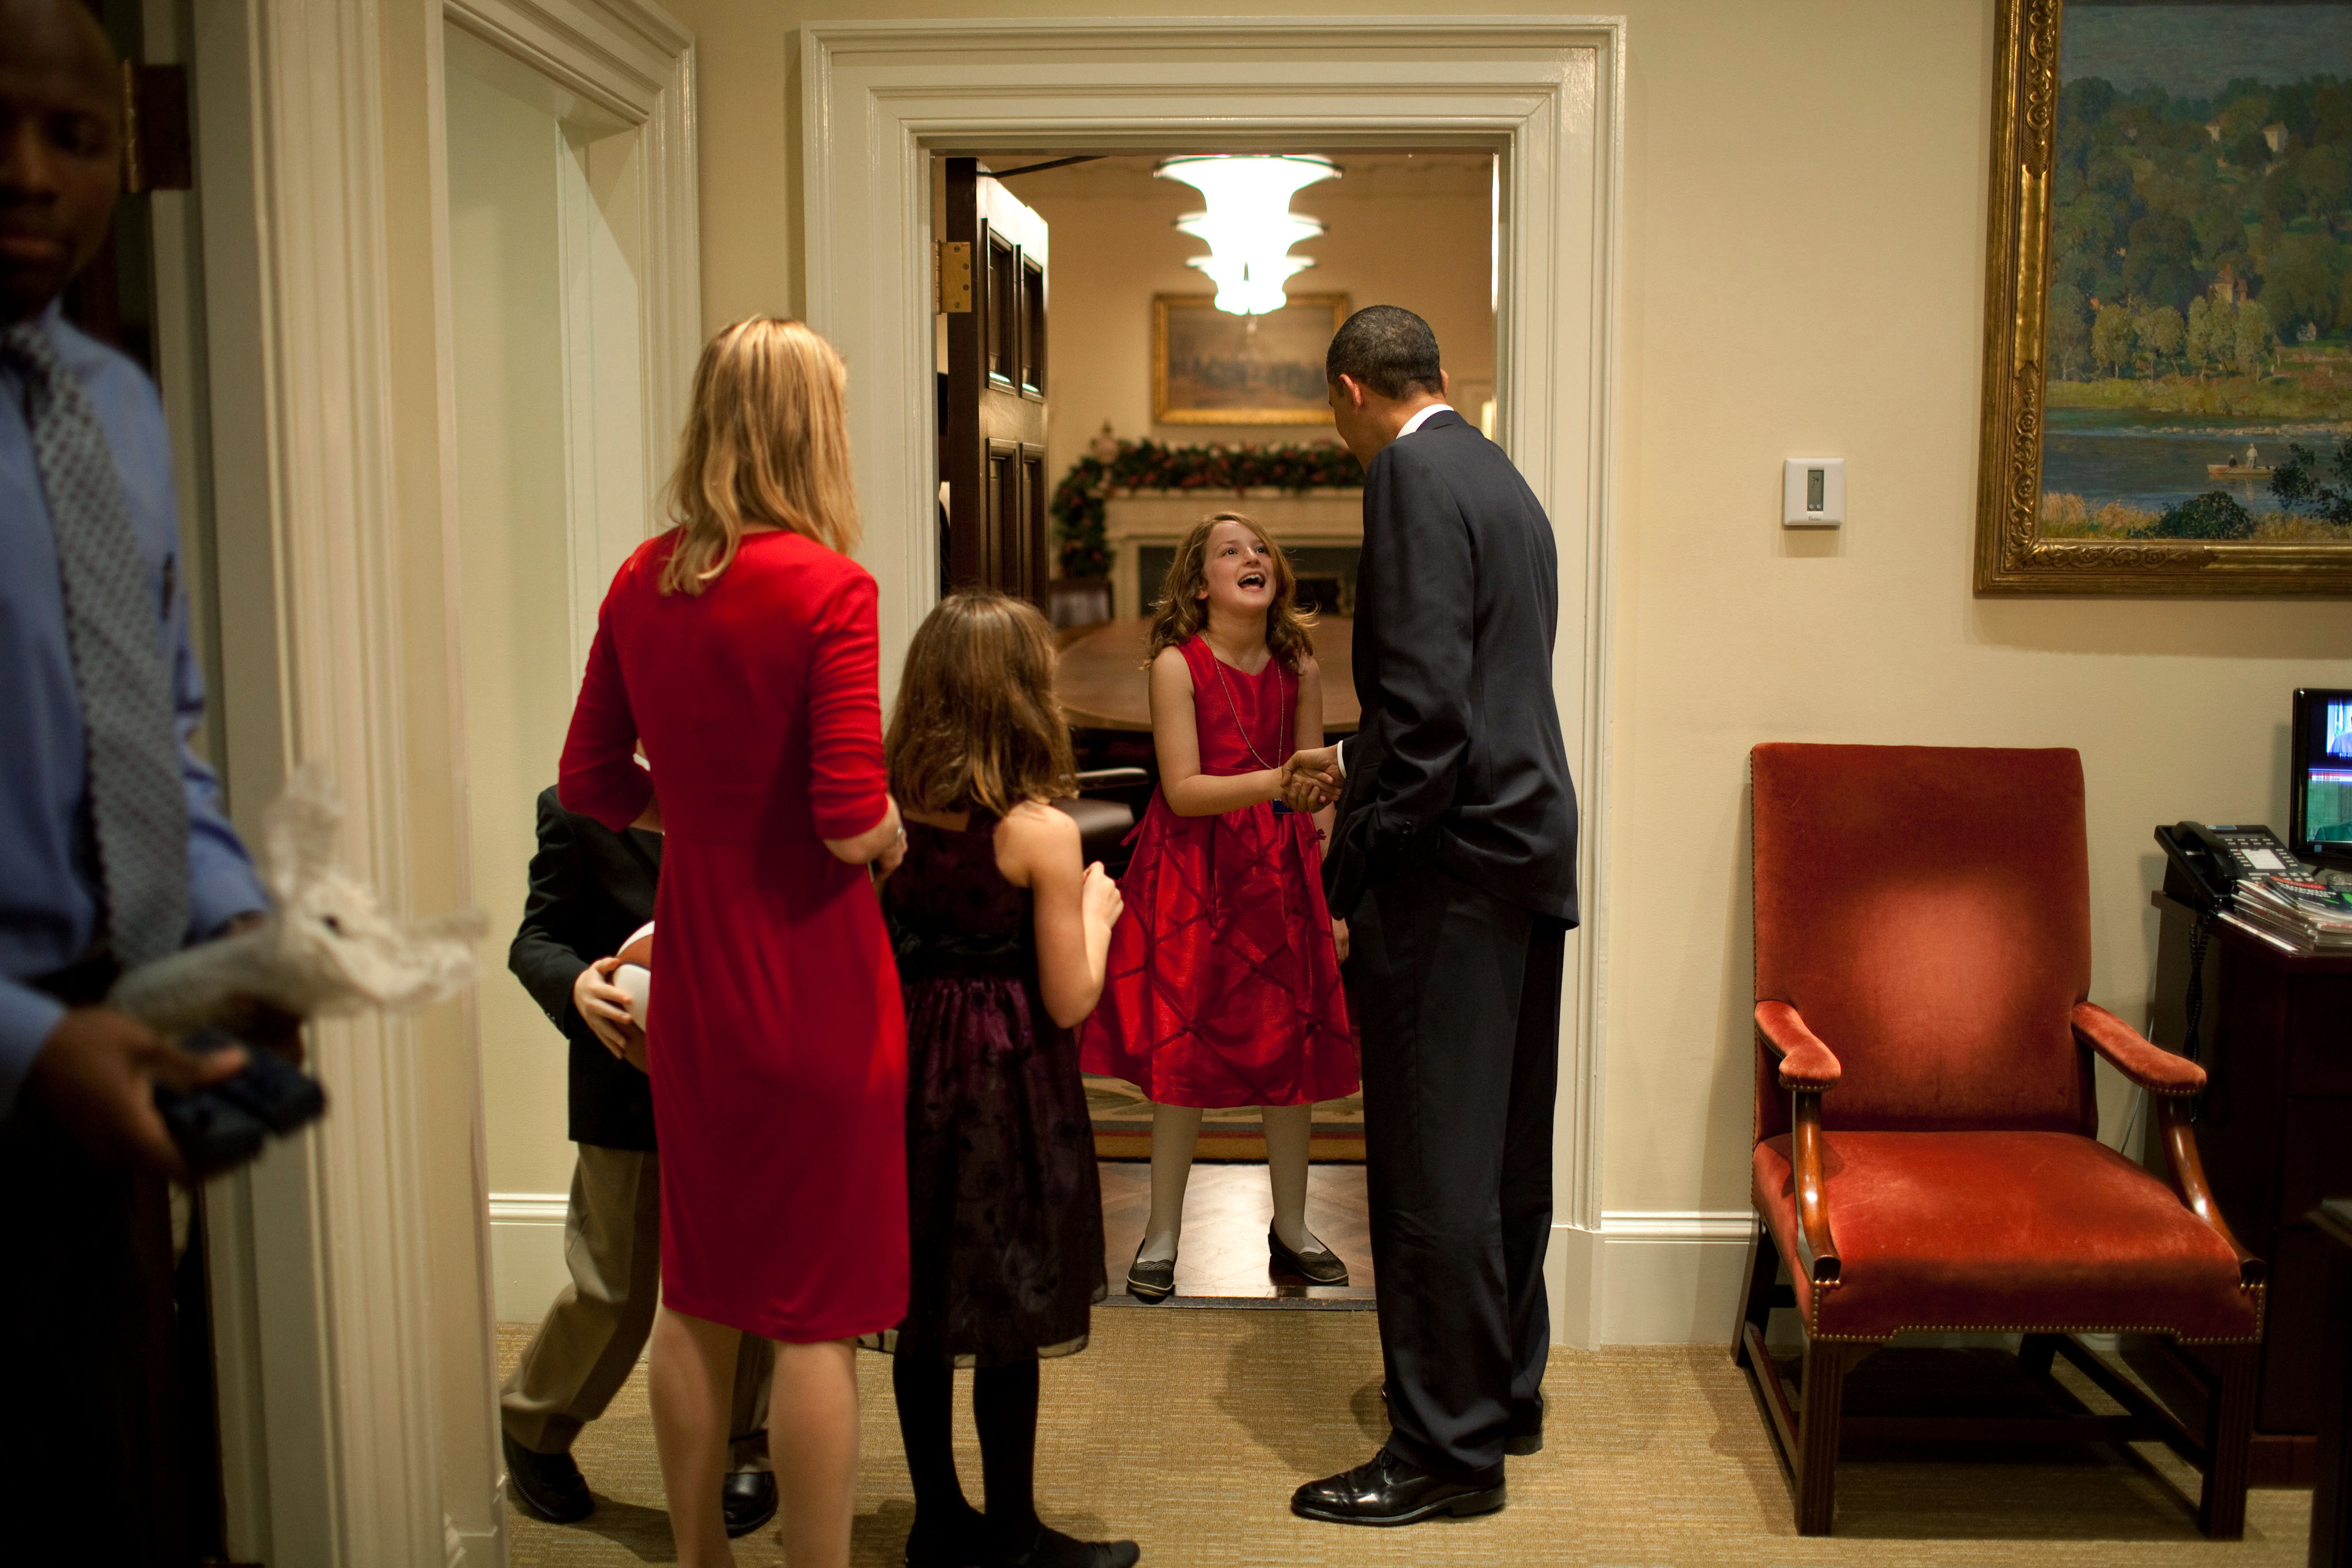 filebarack obama greets a family in the oval office secretary officejpg fileobama oval officejpg